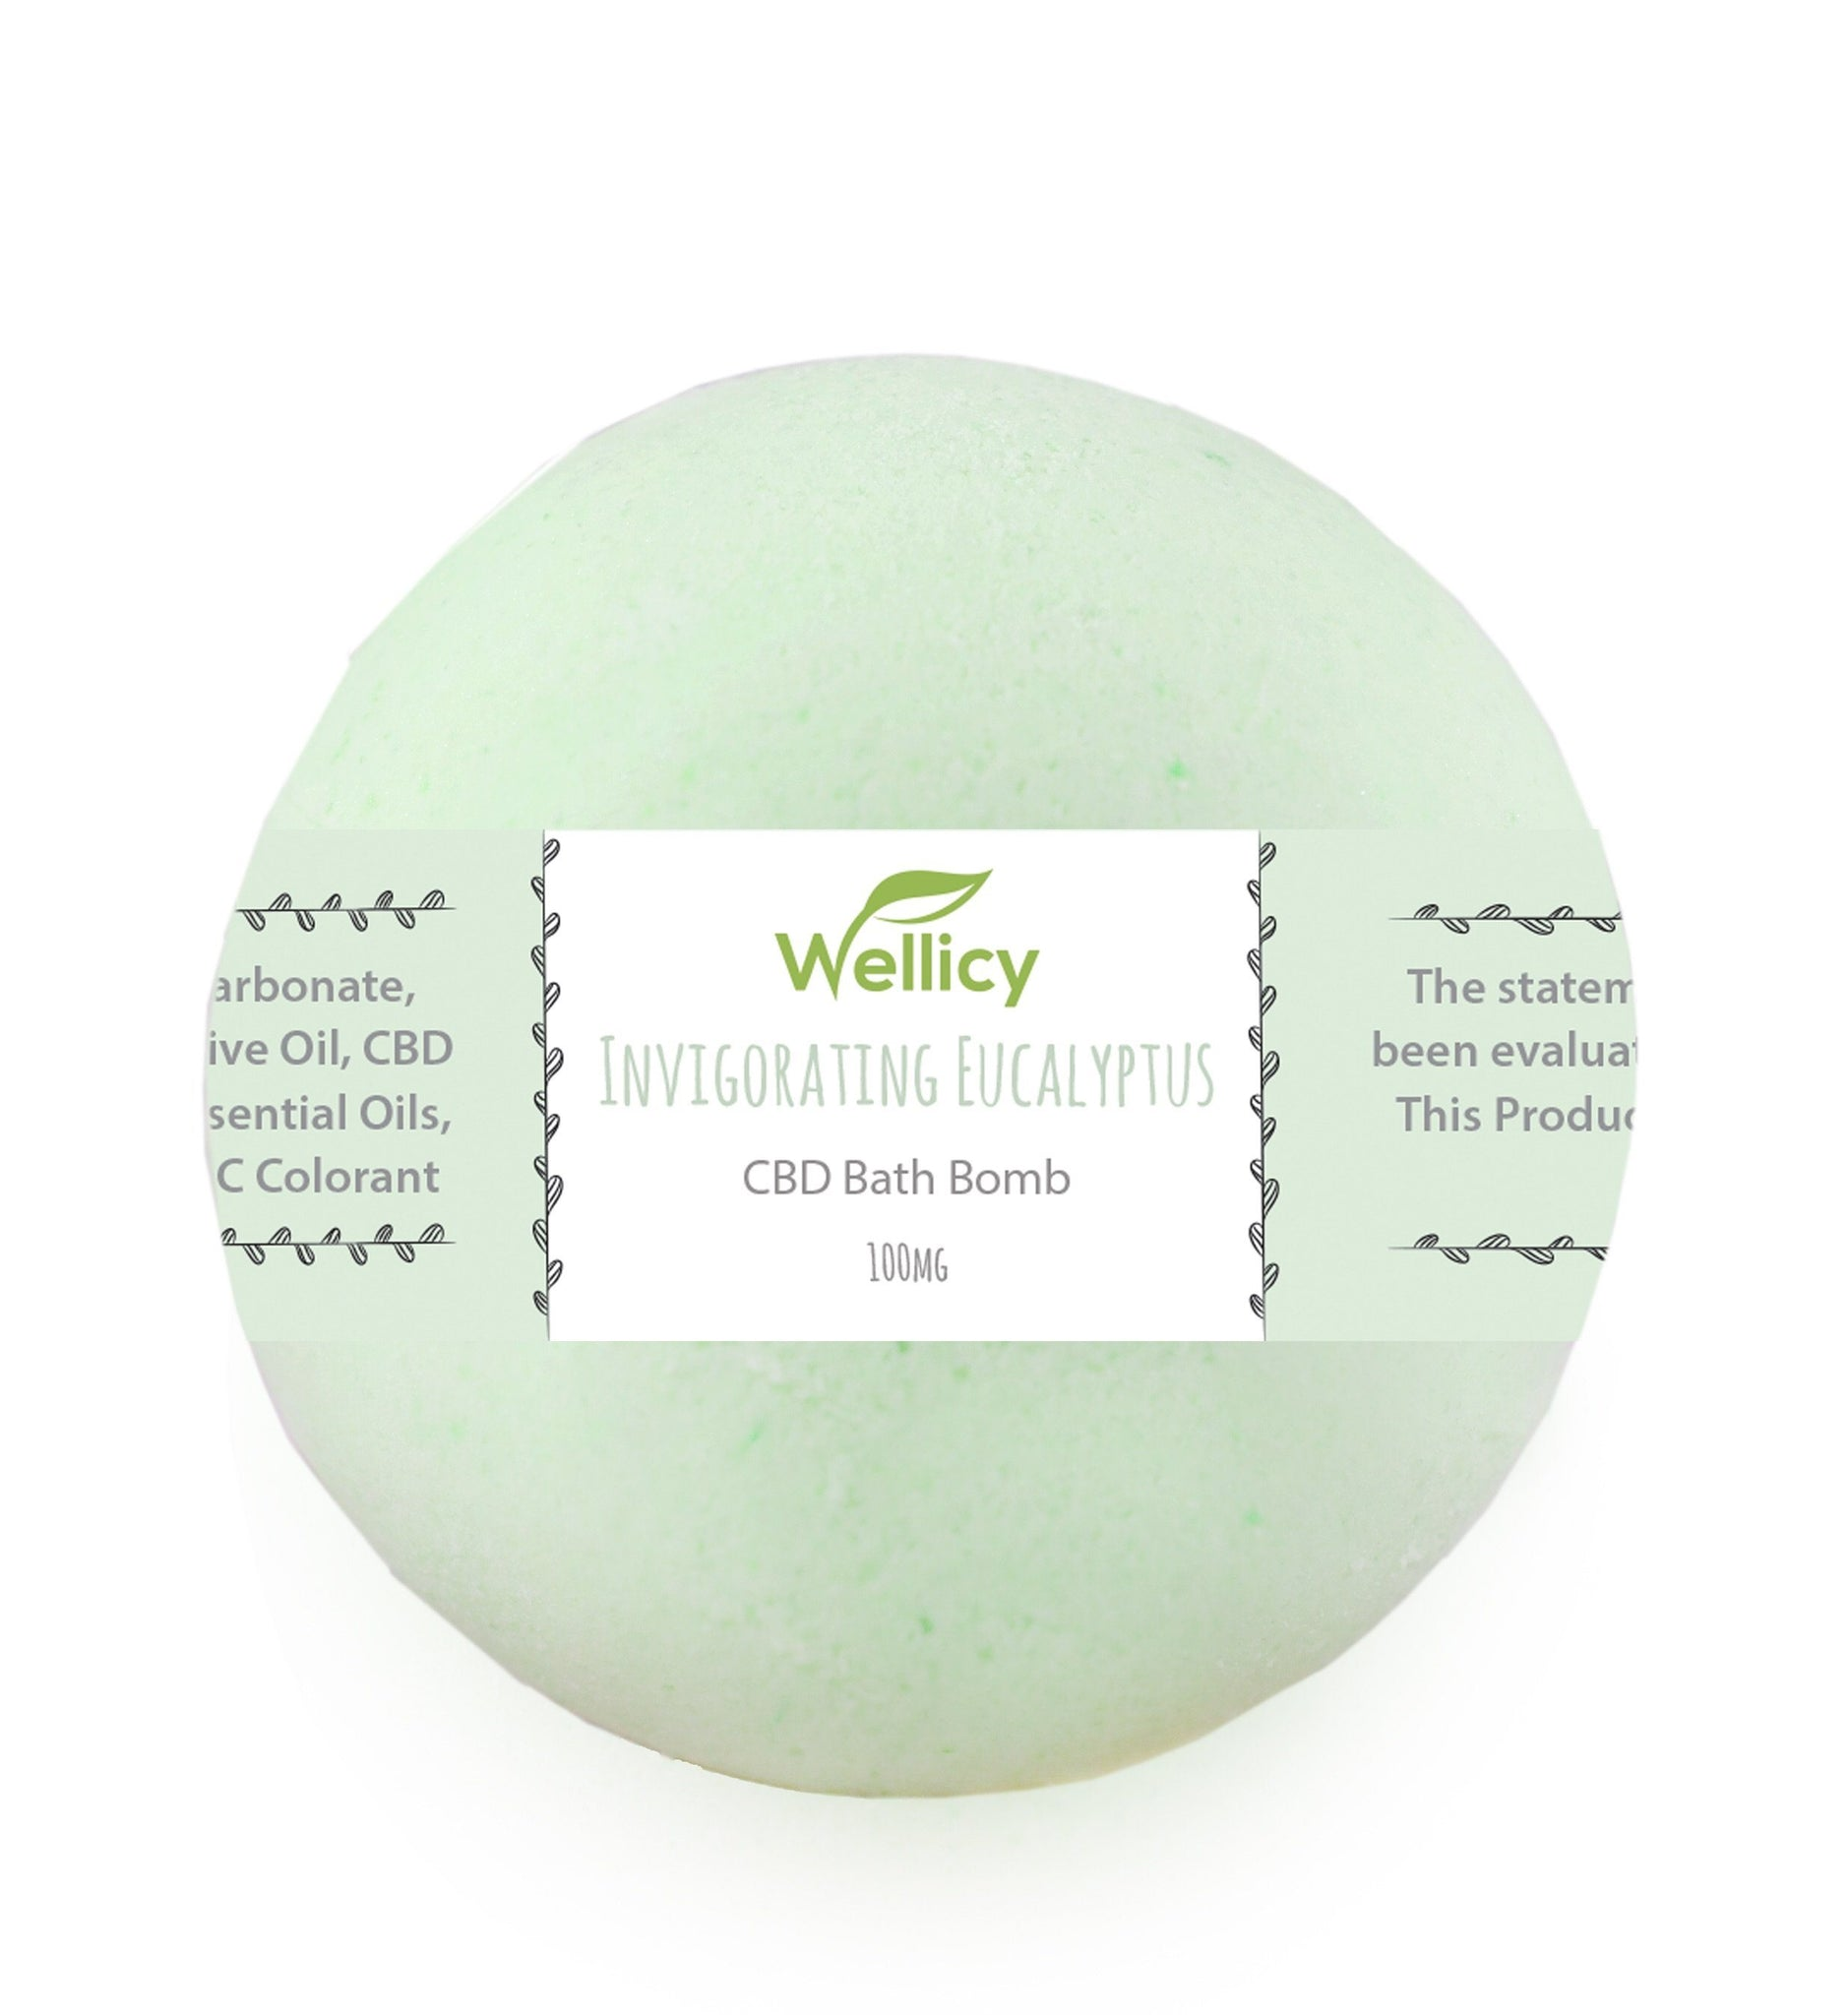 Wellicy Invigorating Eucalyptus CBD Bath Bomb